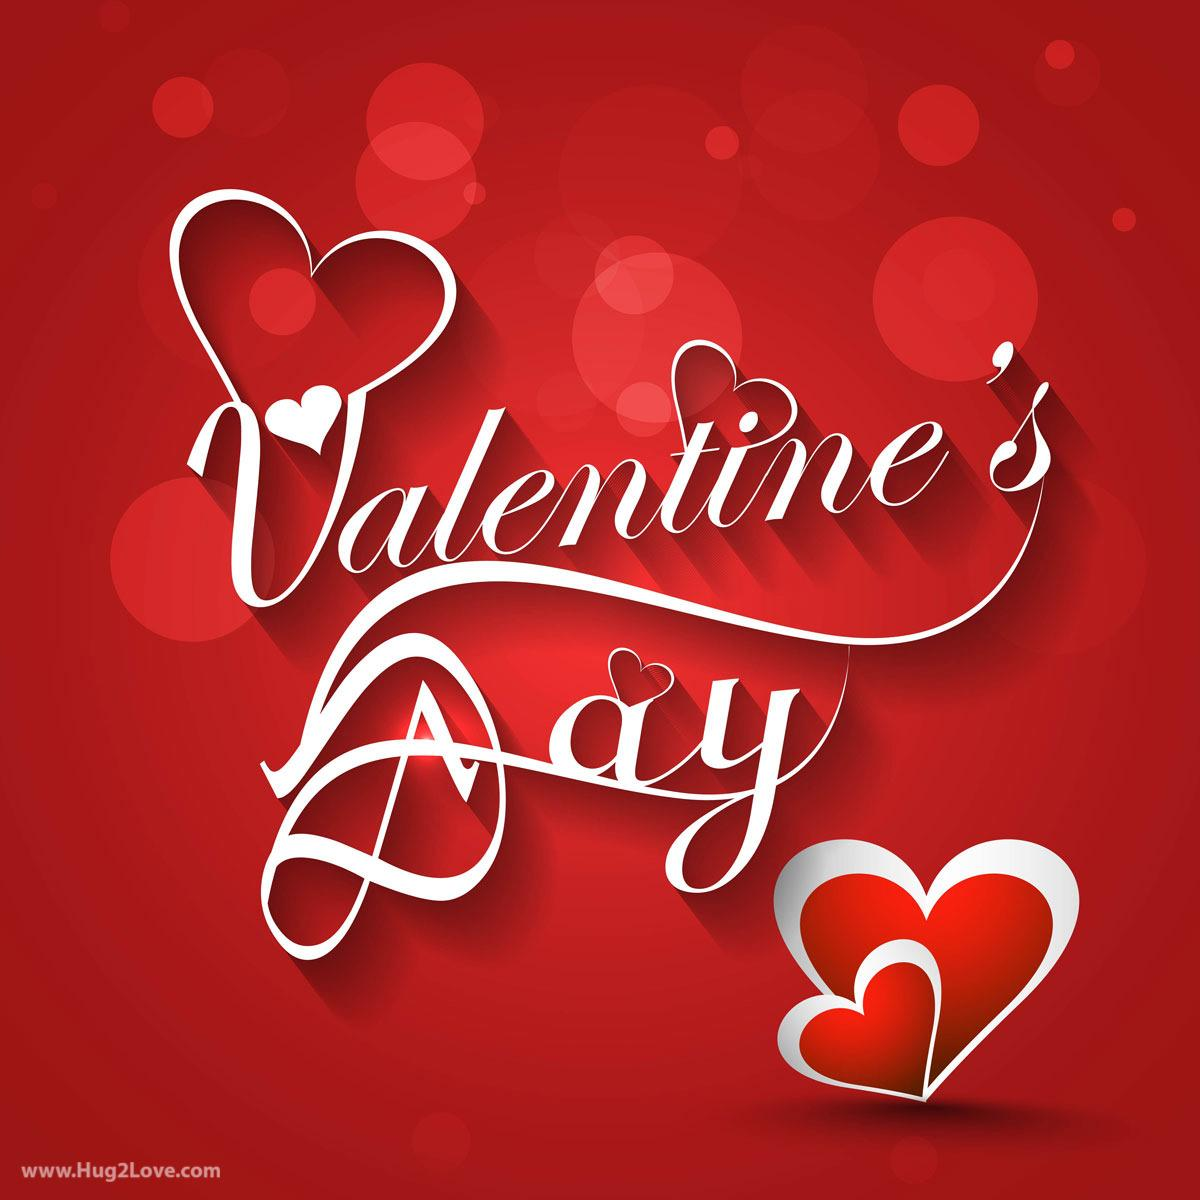 100 Happy Valentine's Day Images & Wallpapers 2019